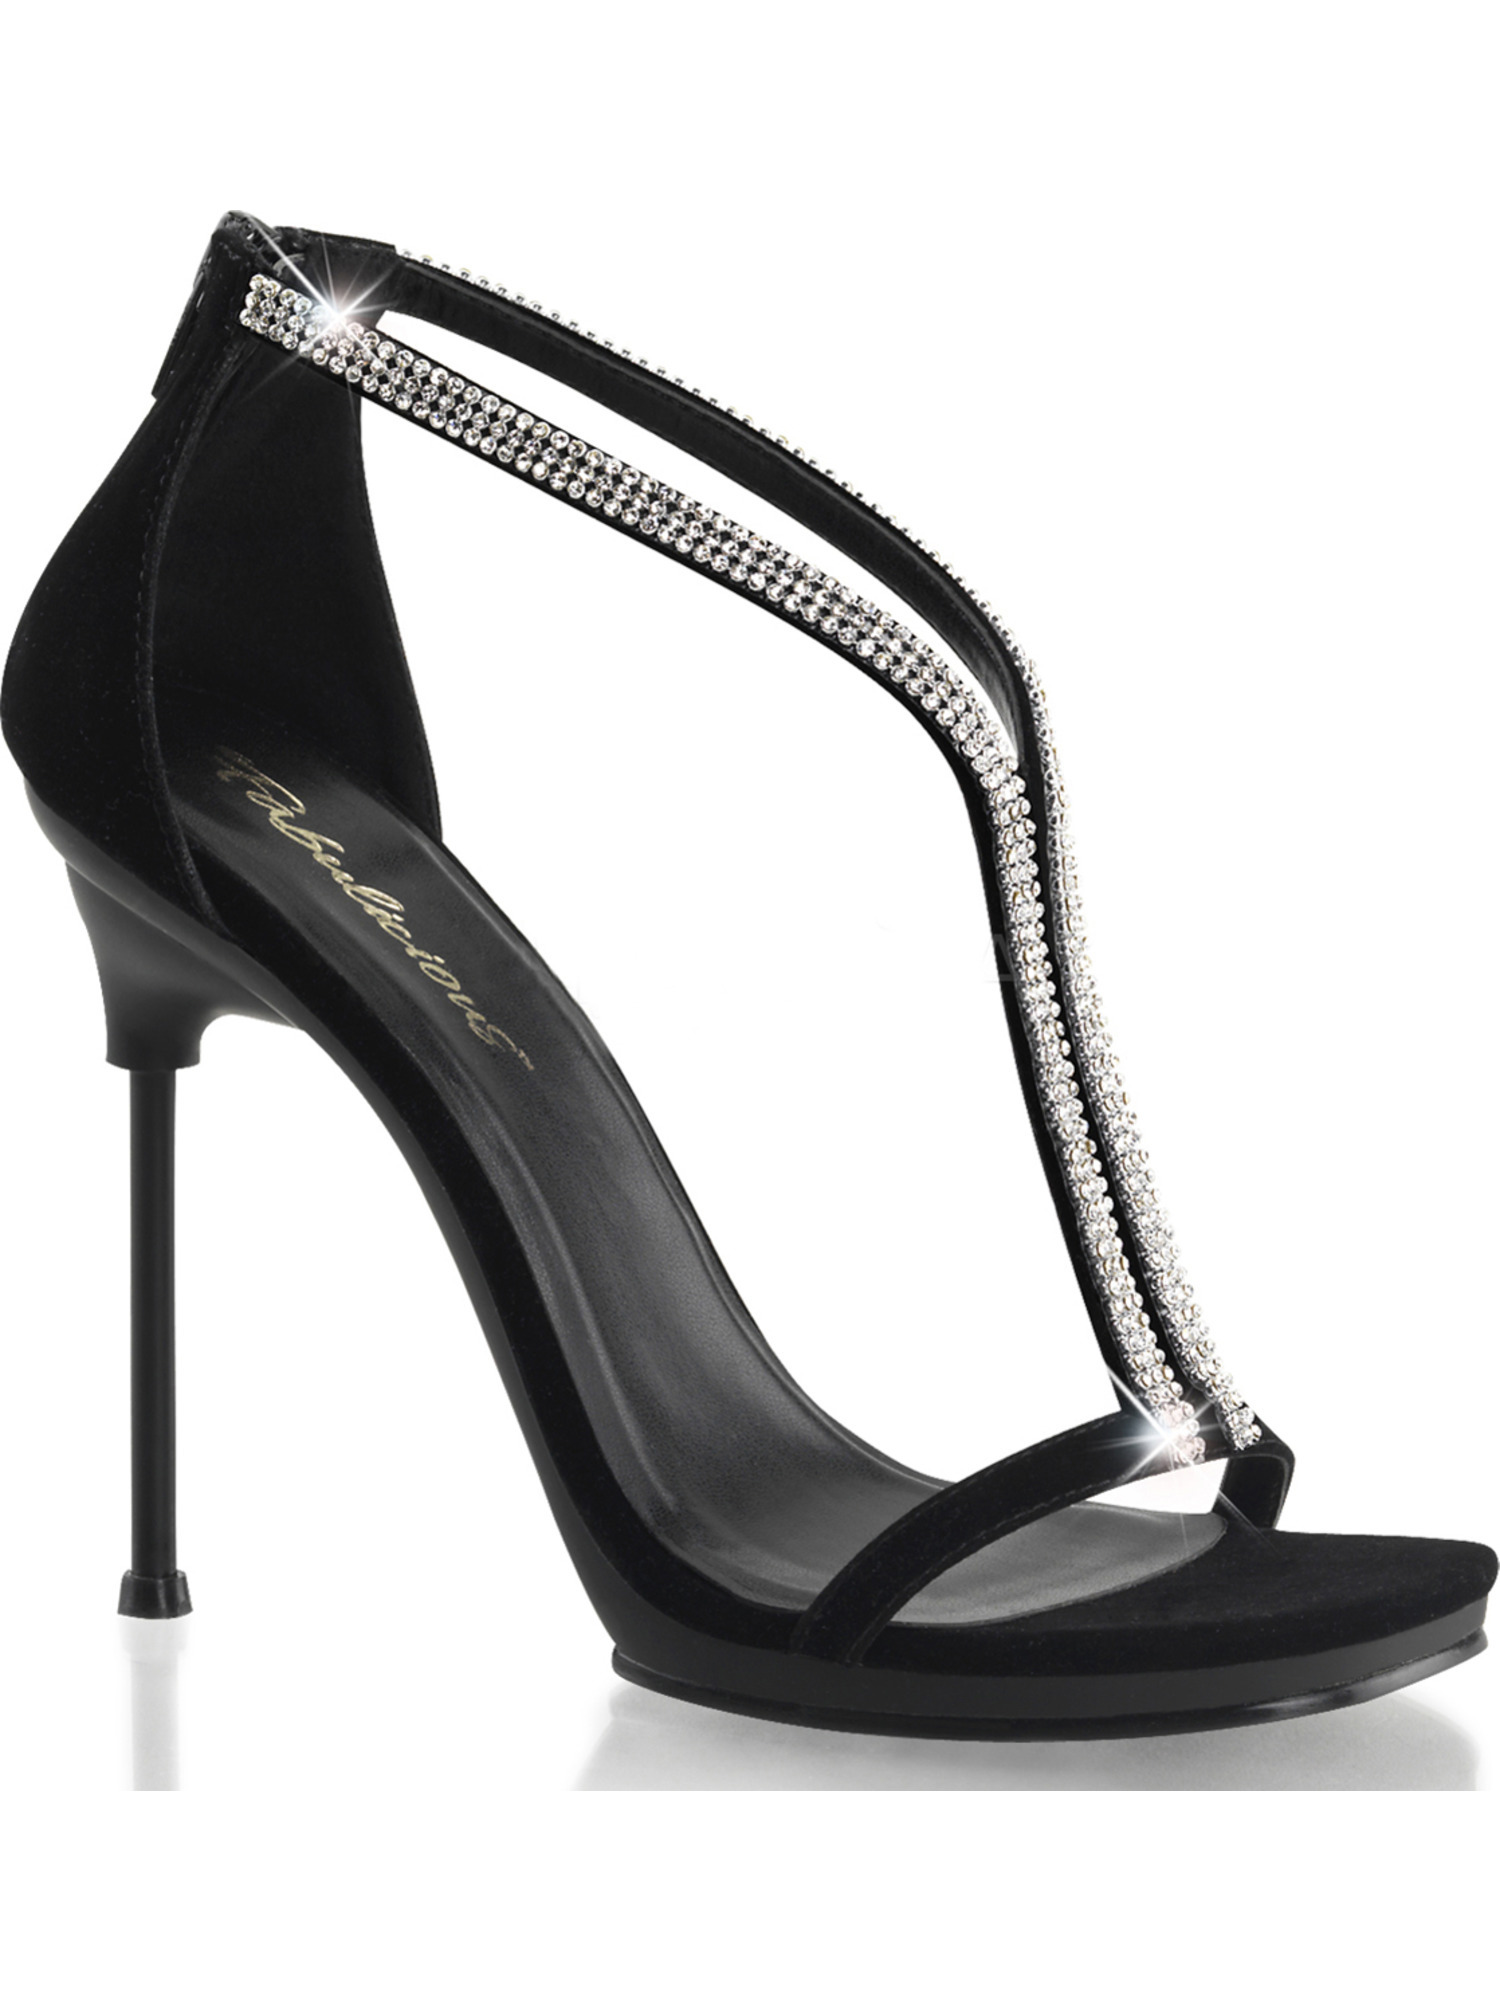 Women Black Velvet and Rhinestone T-Strap Sandals Dress Shoes with 4.5'' Heels